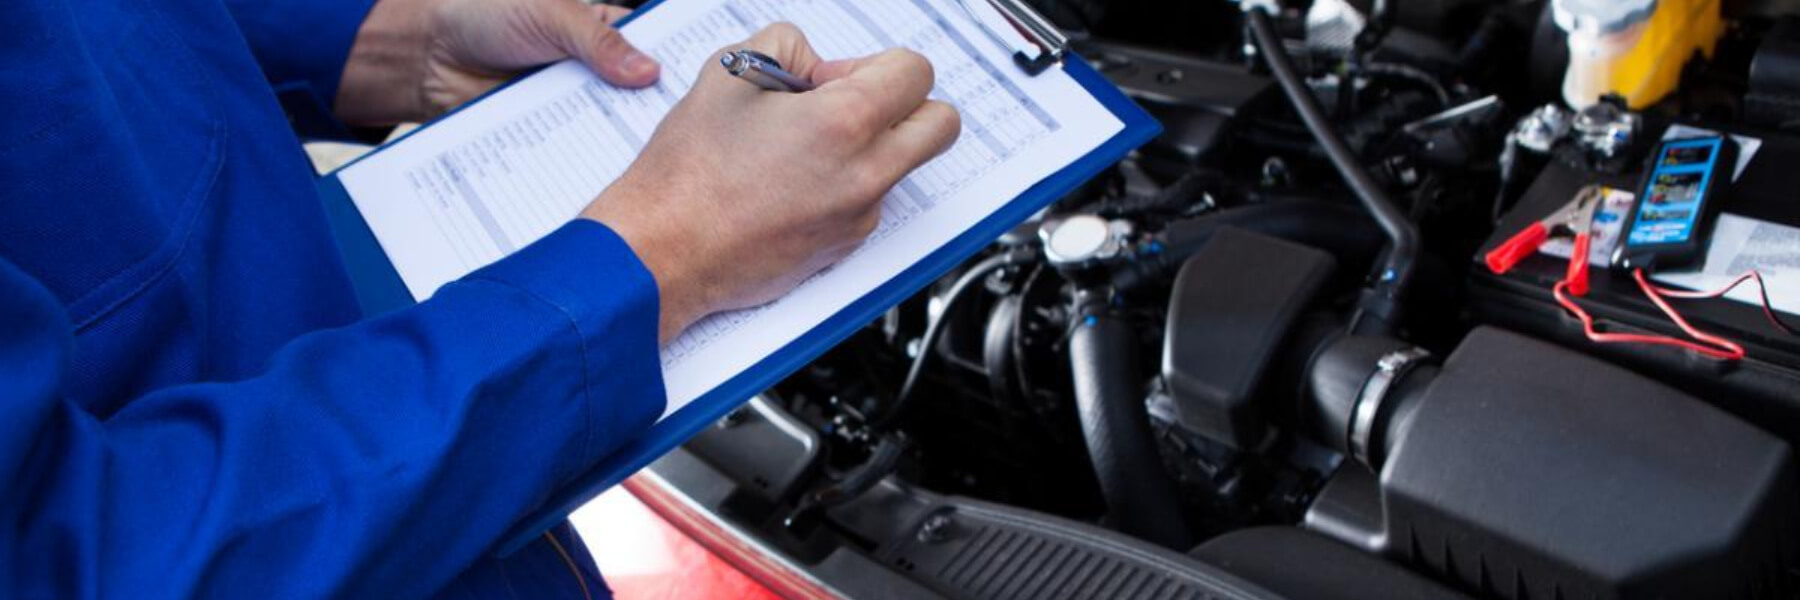 proactive vehicle maintenance plan